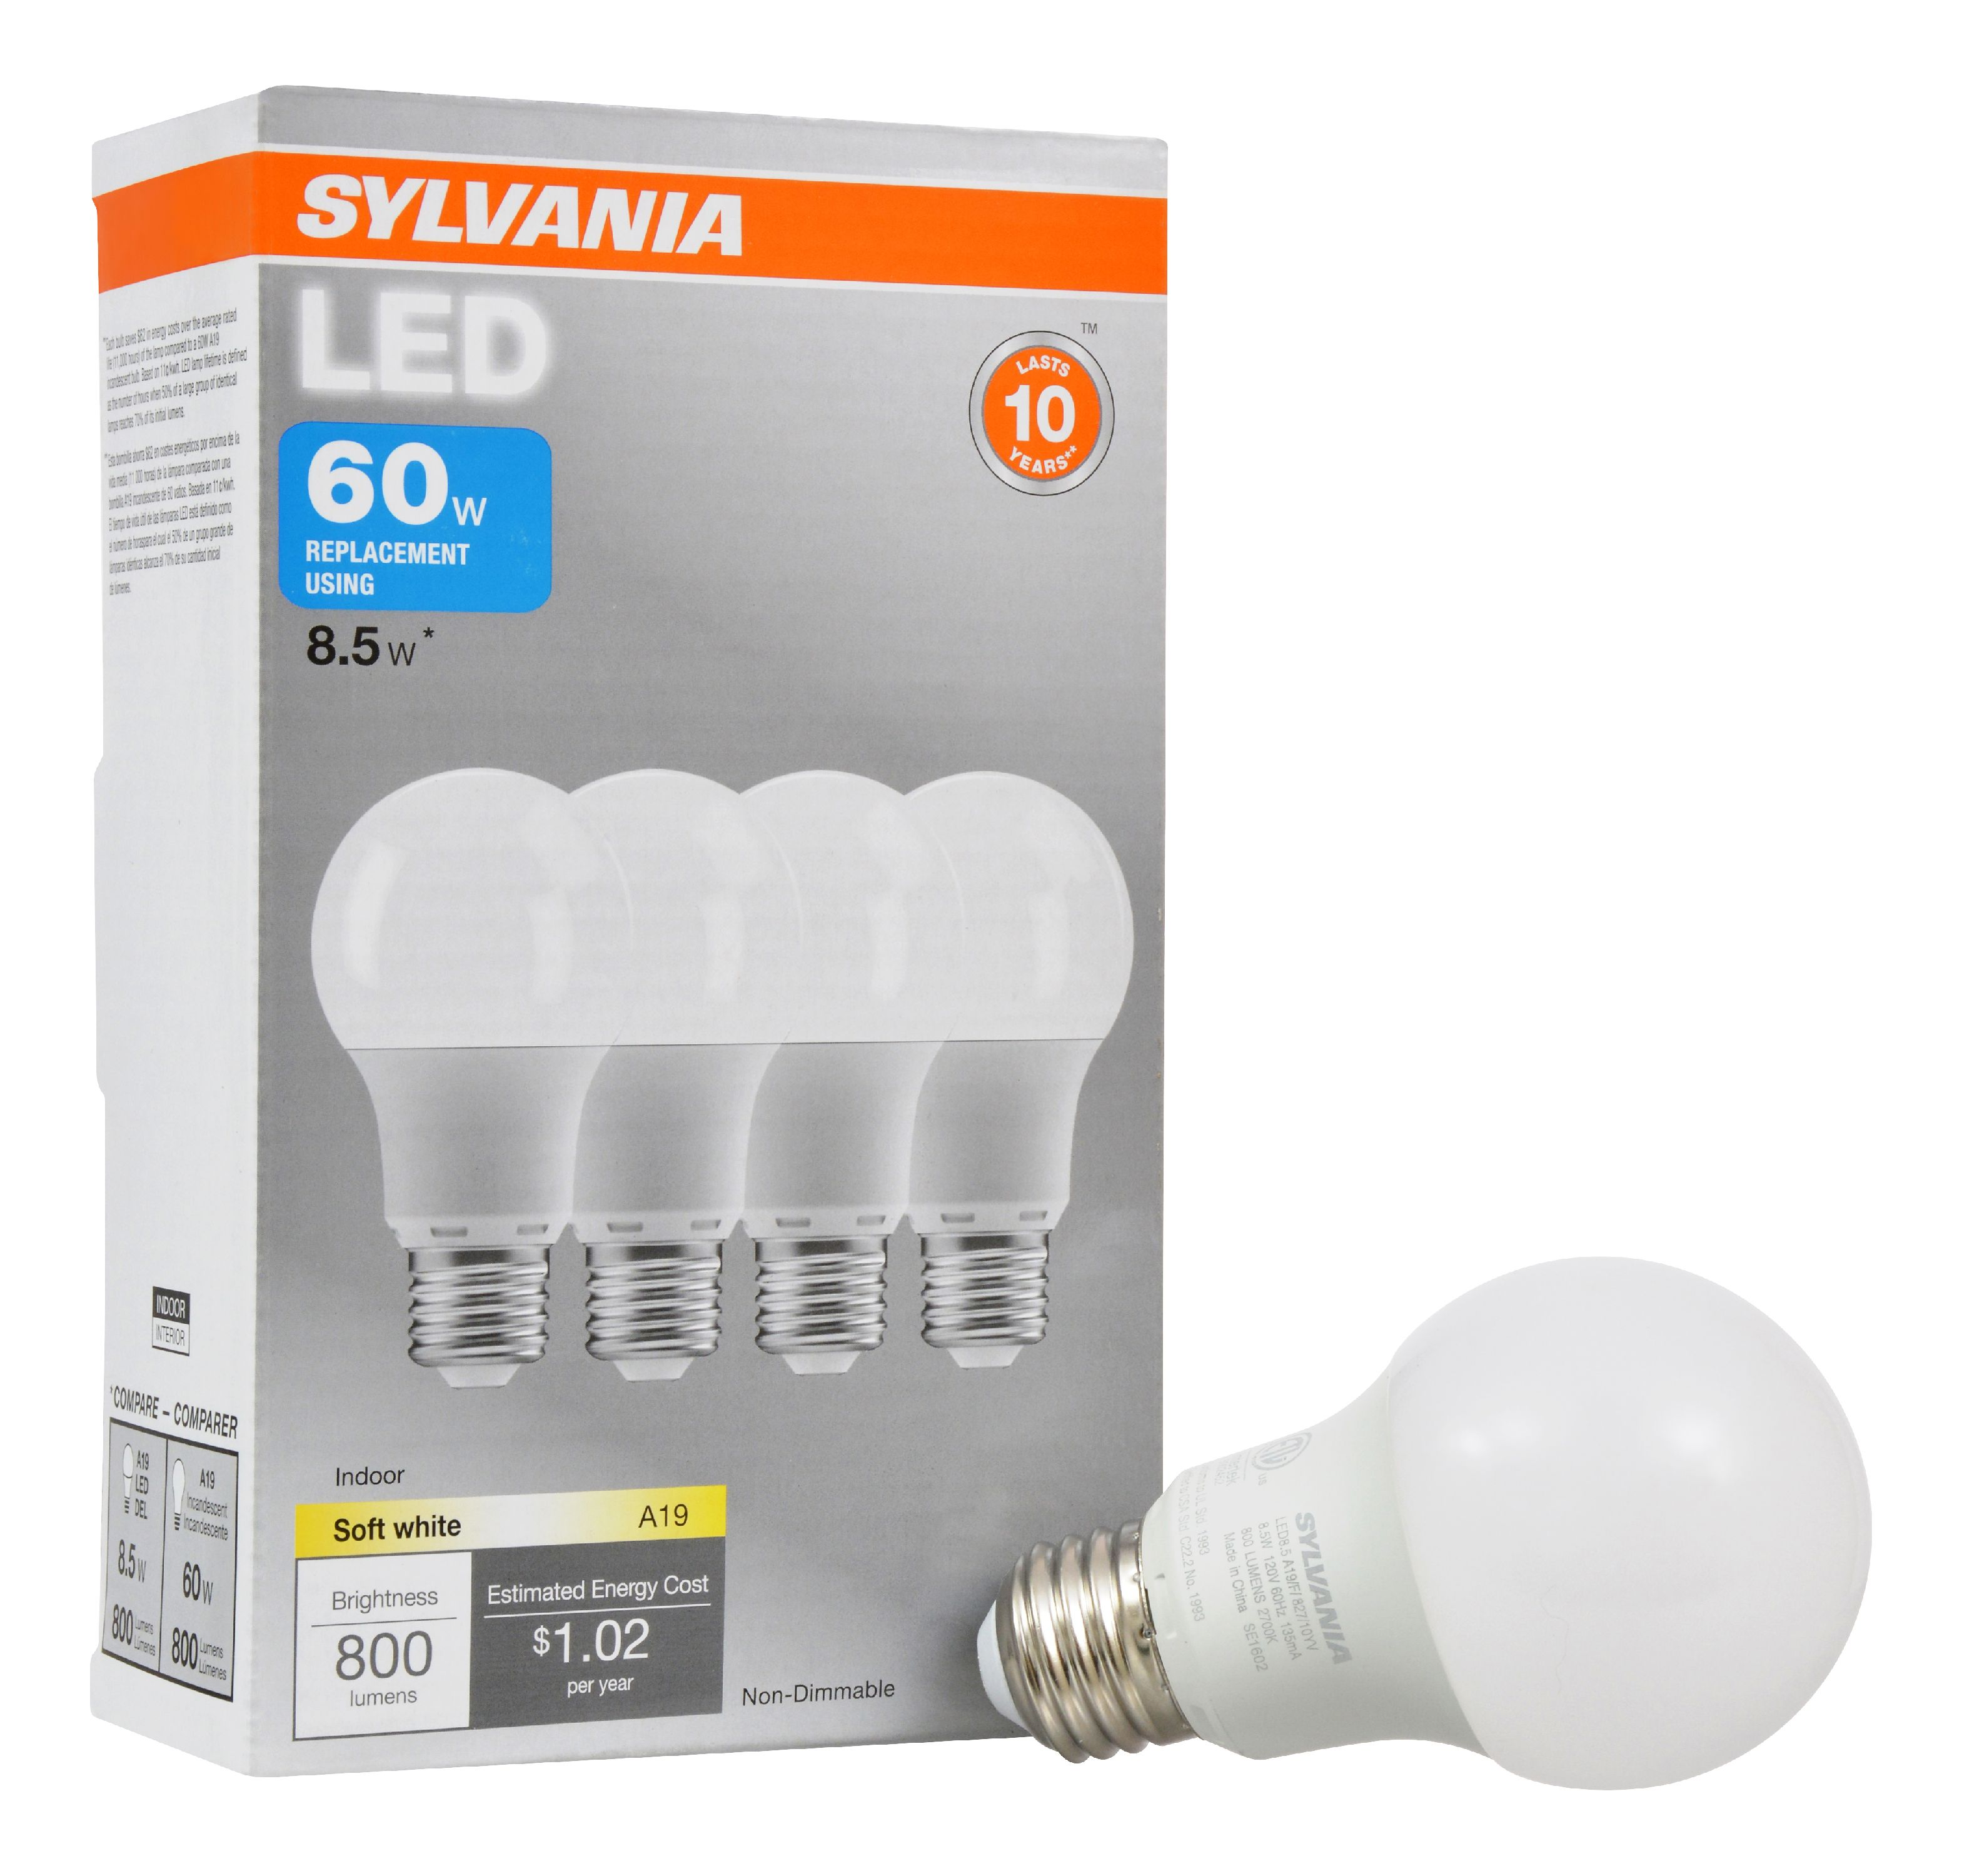 Sylvania LED Light Bulbs, 8.5W (60W Equivalent) Soft White, 4-count